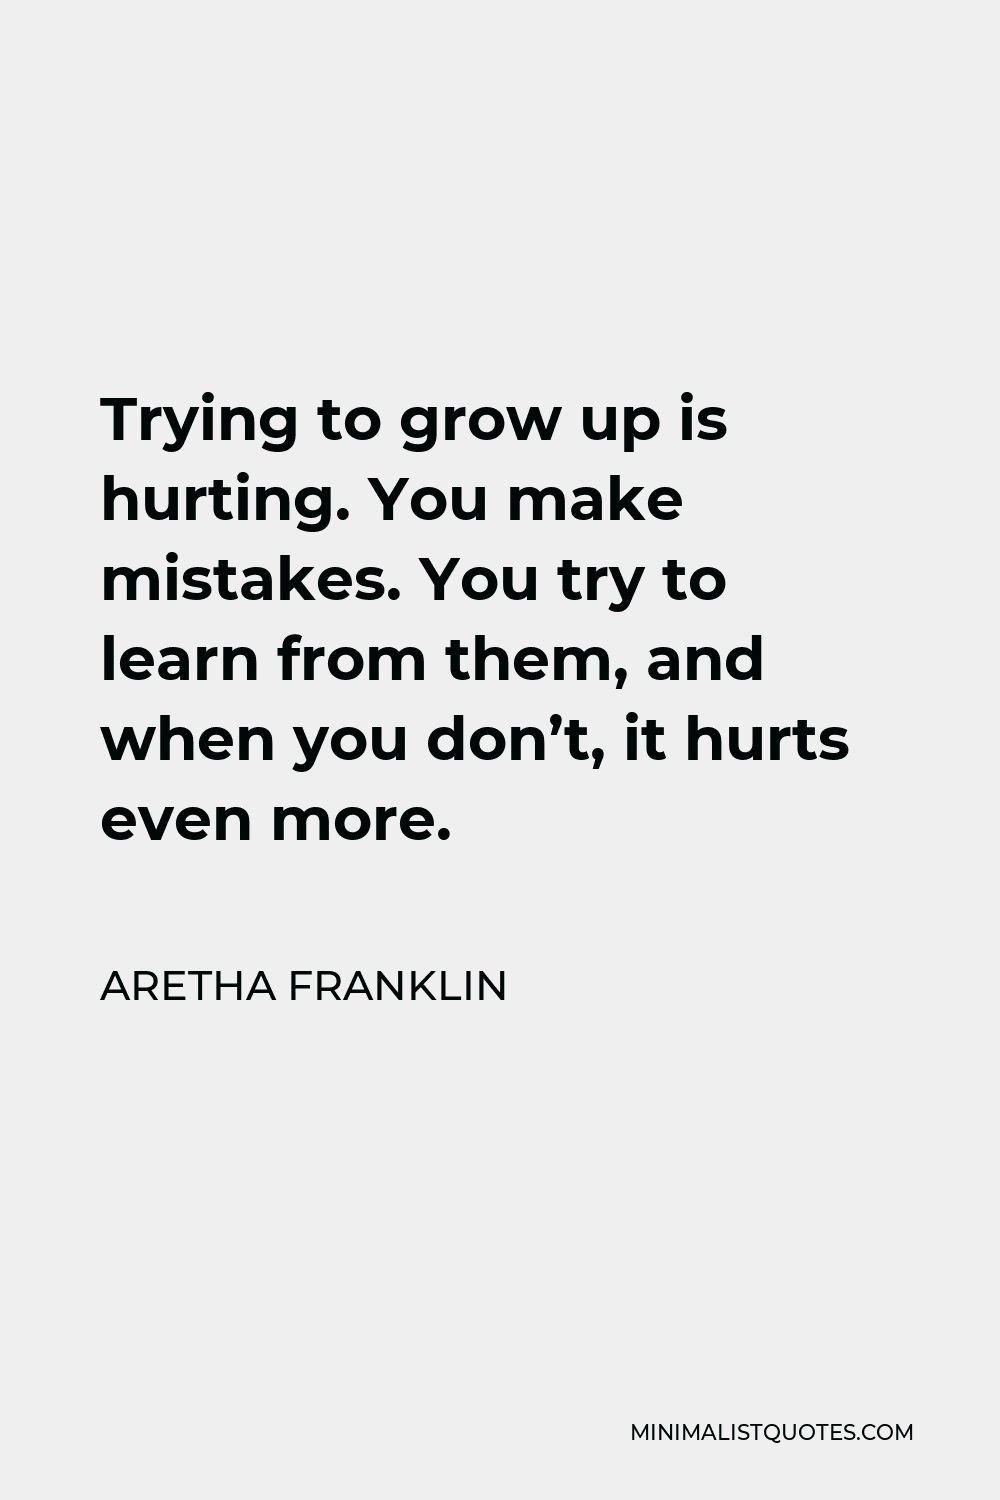 Aretha Franklin Quote - Trying to grow up is hurting. You make mistakes. You try to learn from them, and when you don't, it hurts even more.